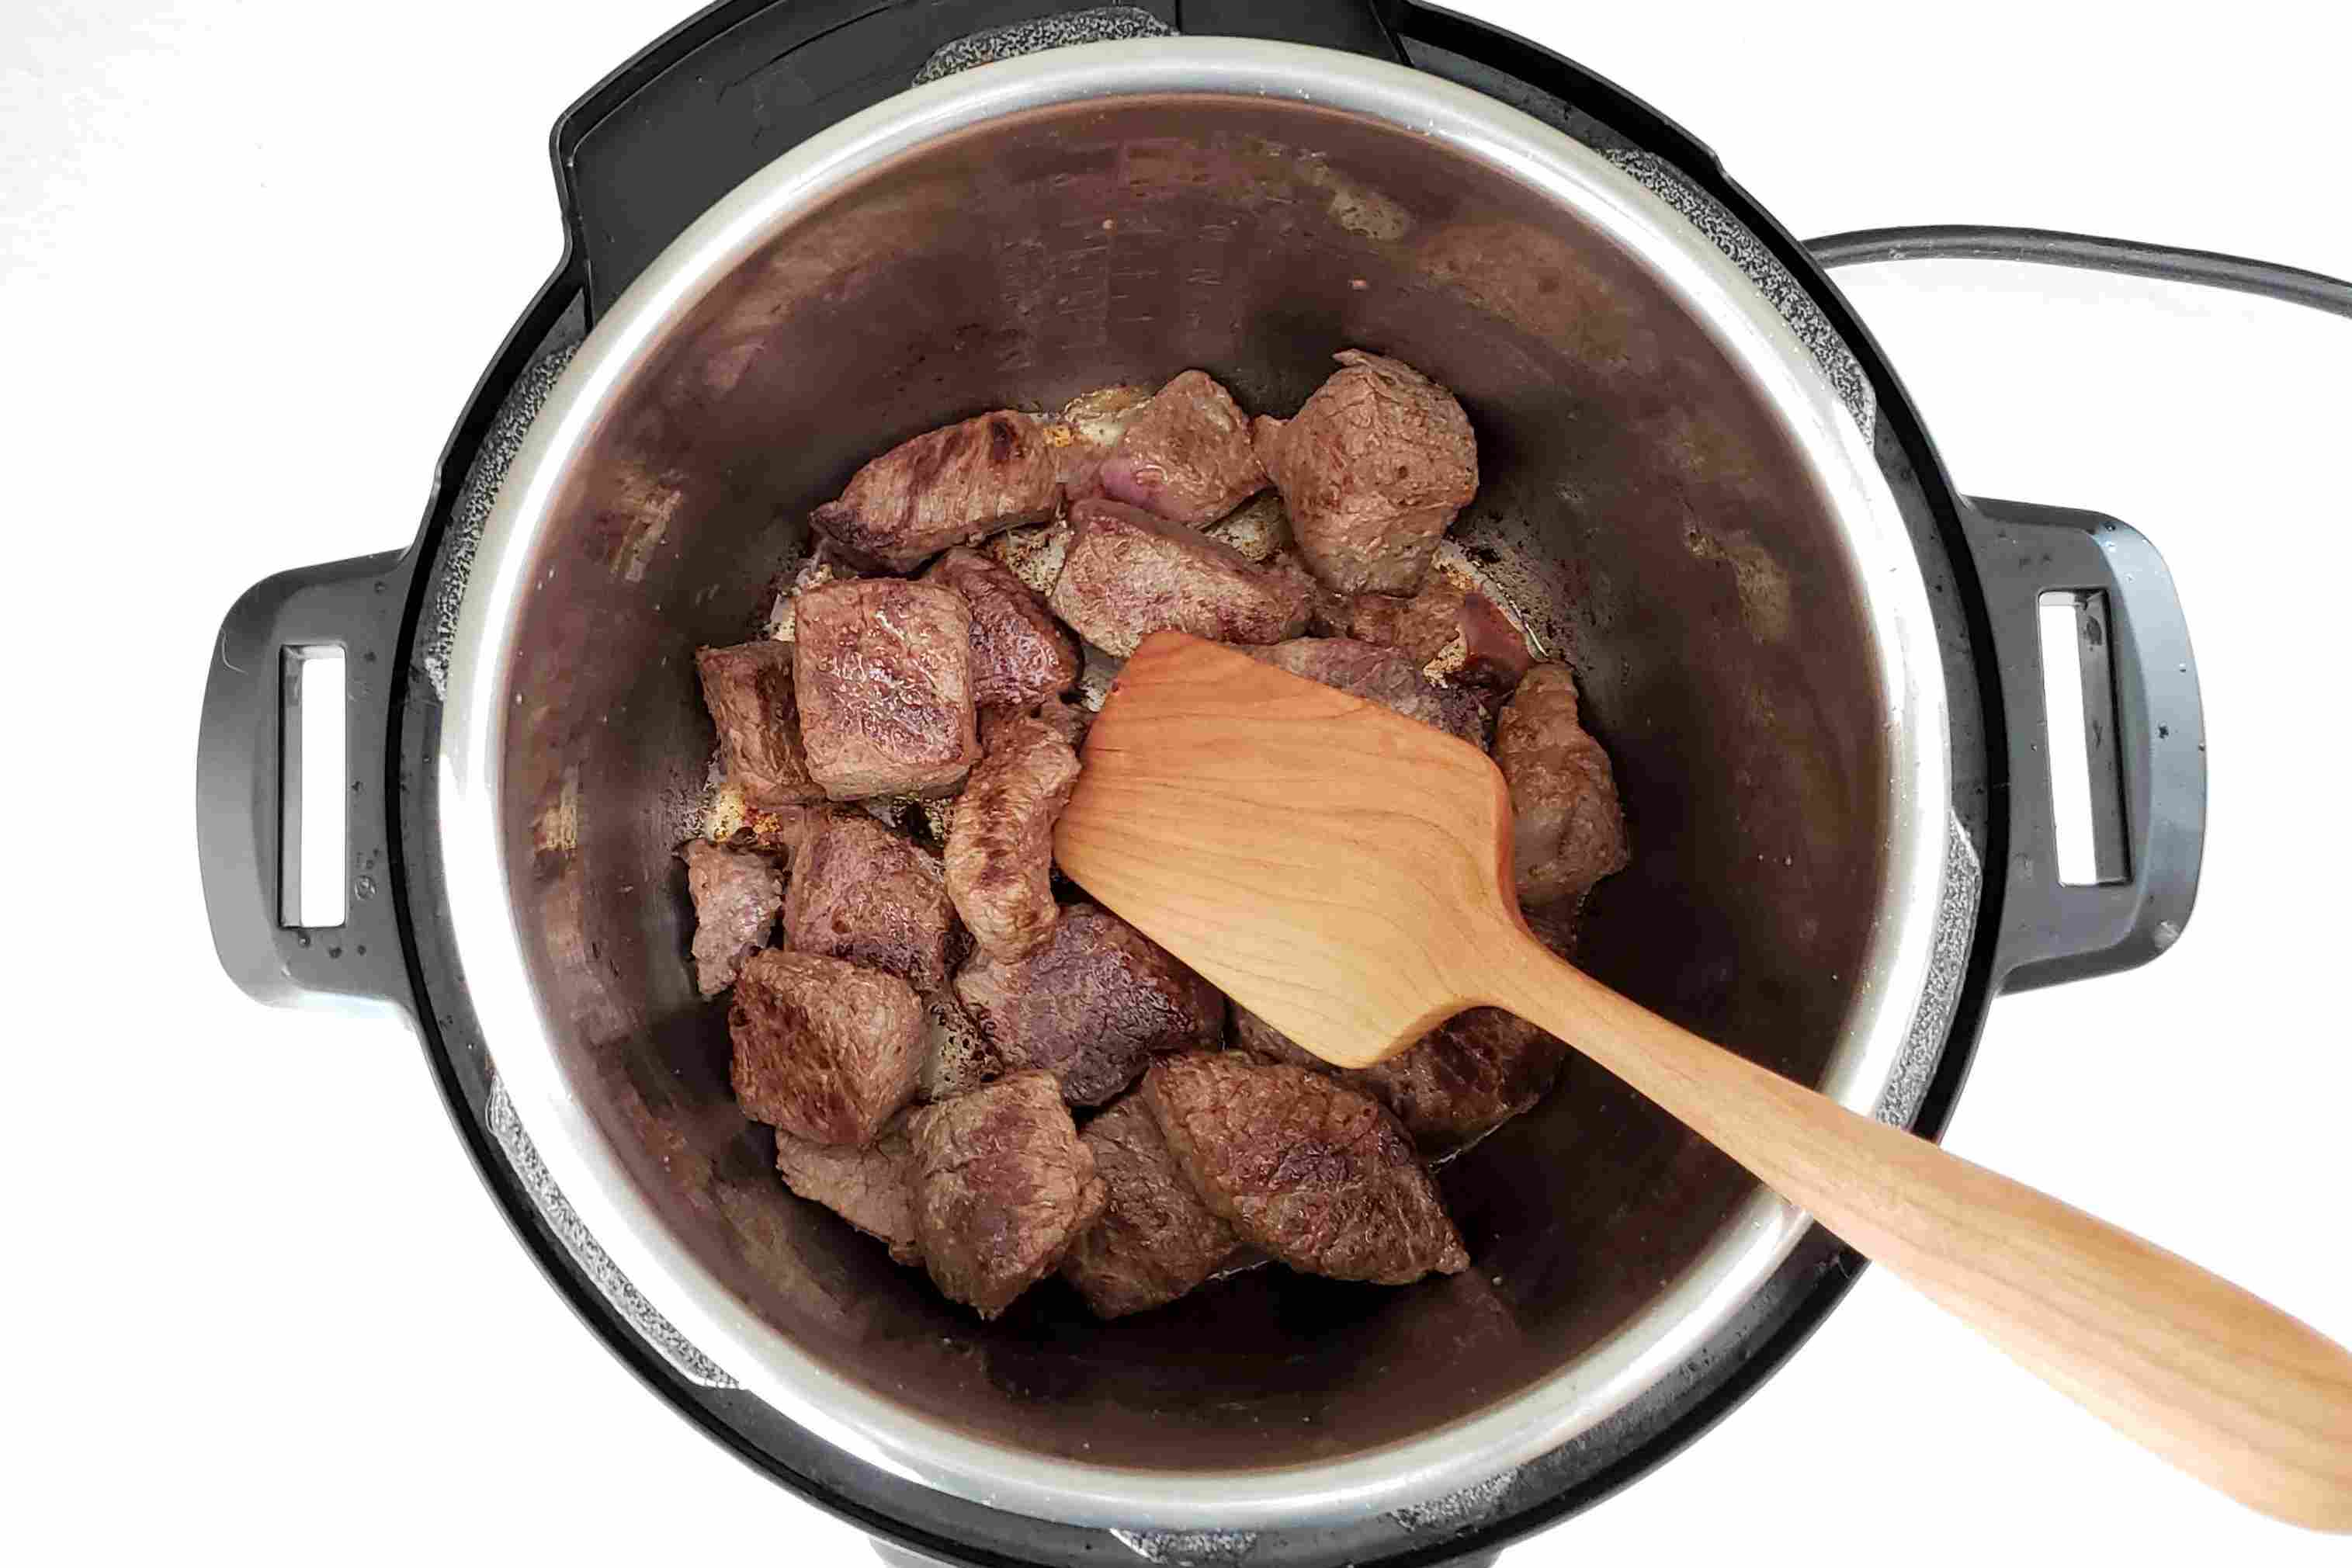 Brown the beef pieces.